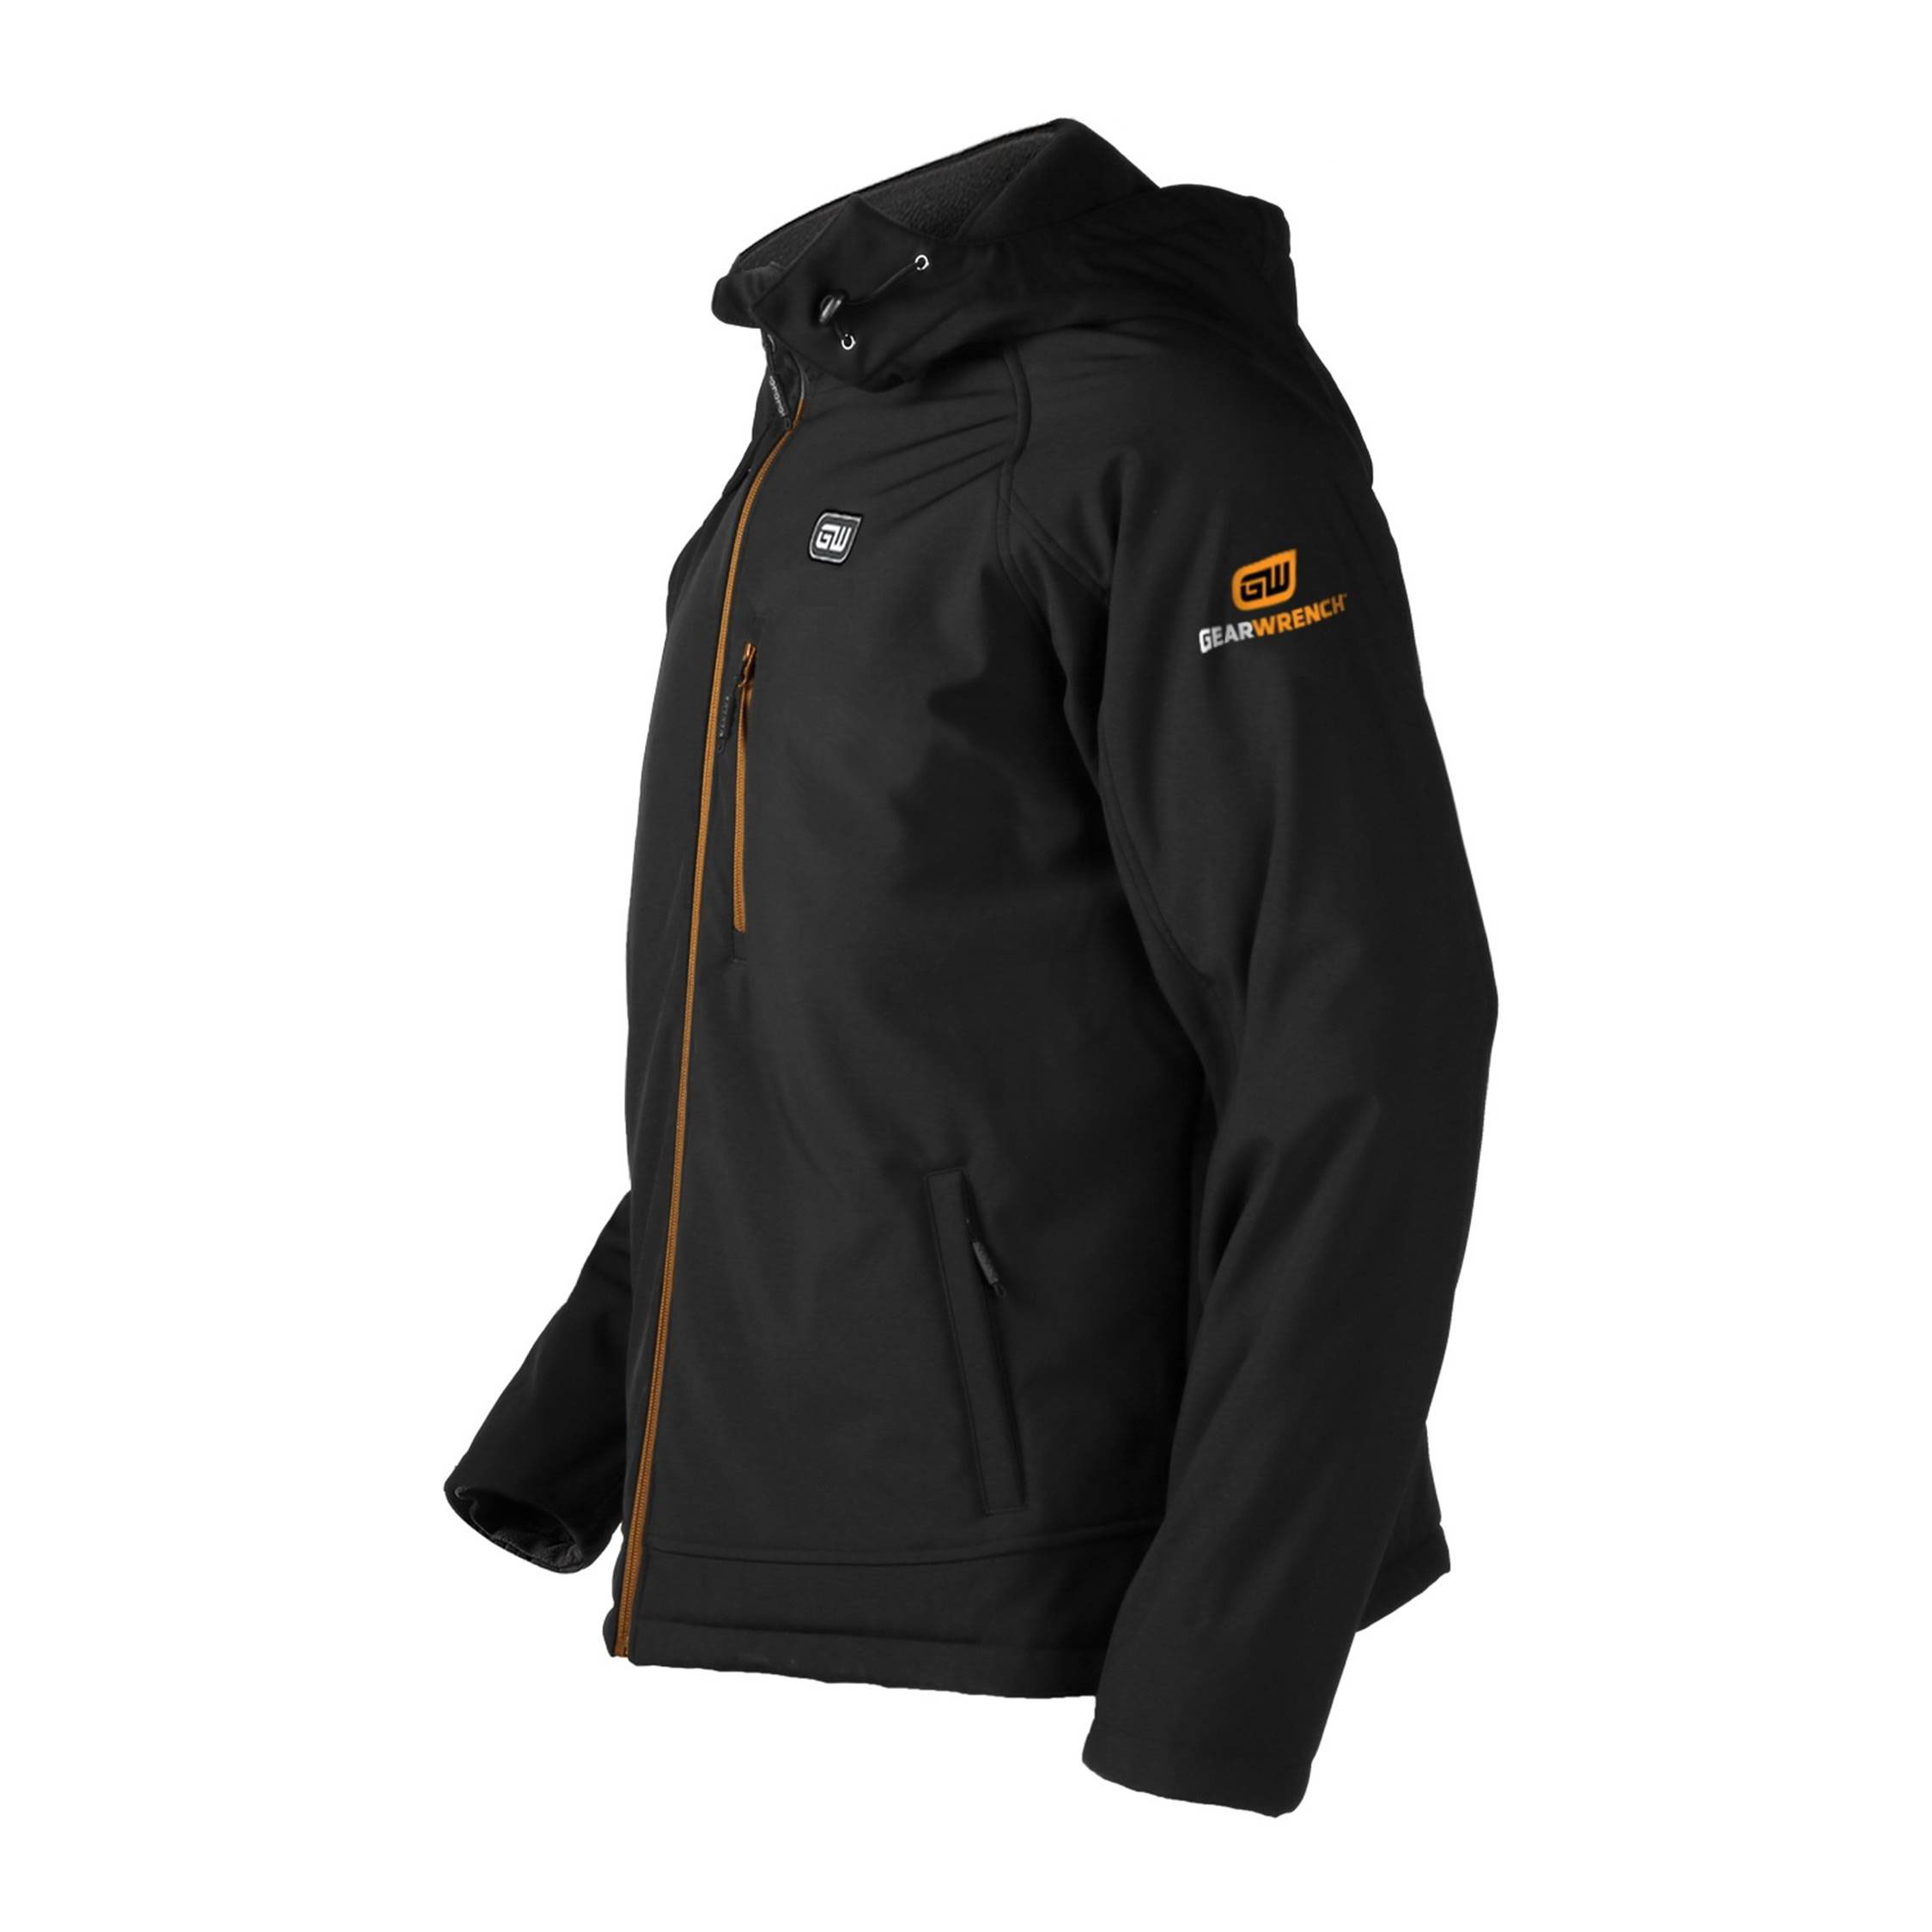 GEARWRENCH Heated Apparel